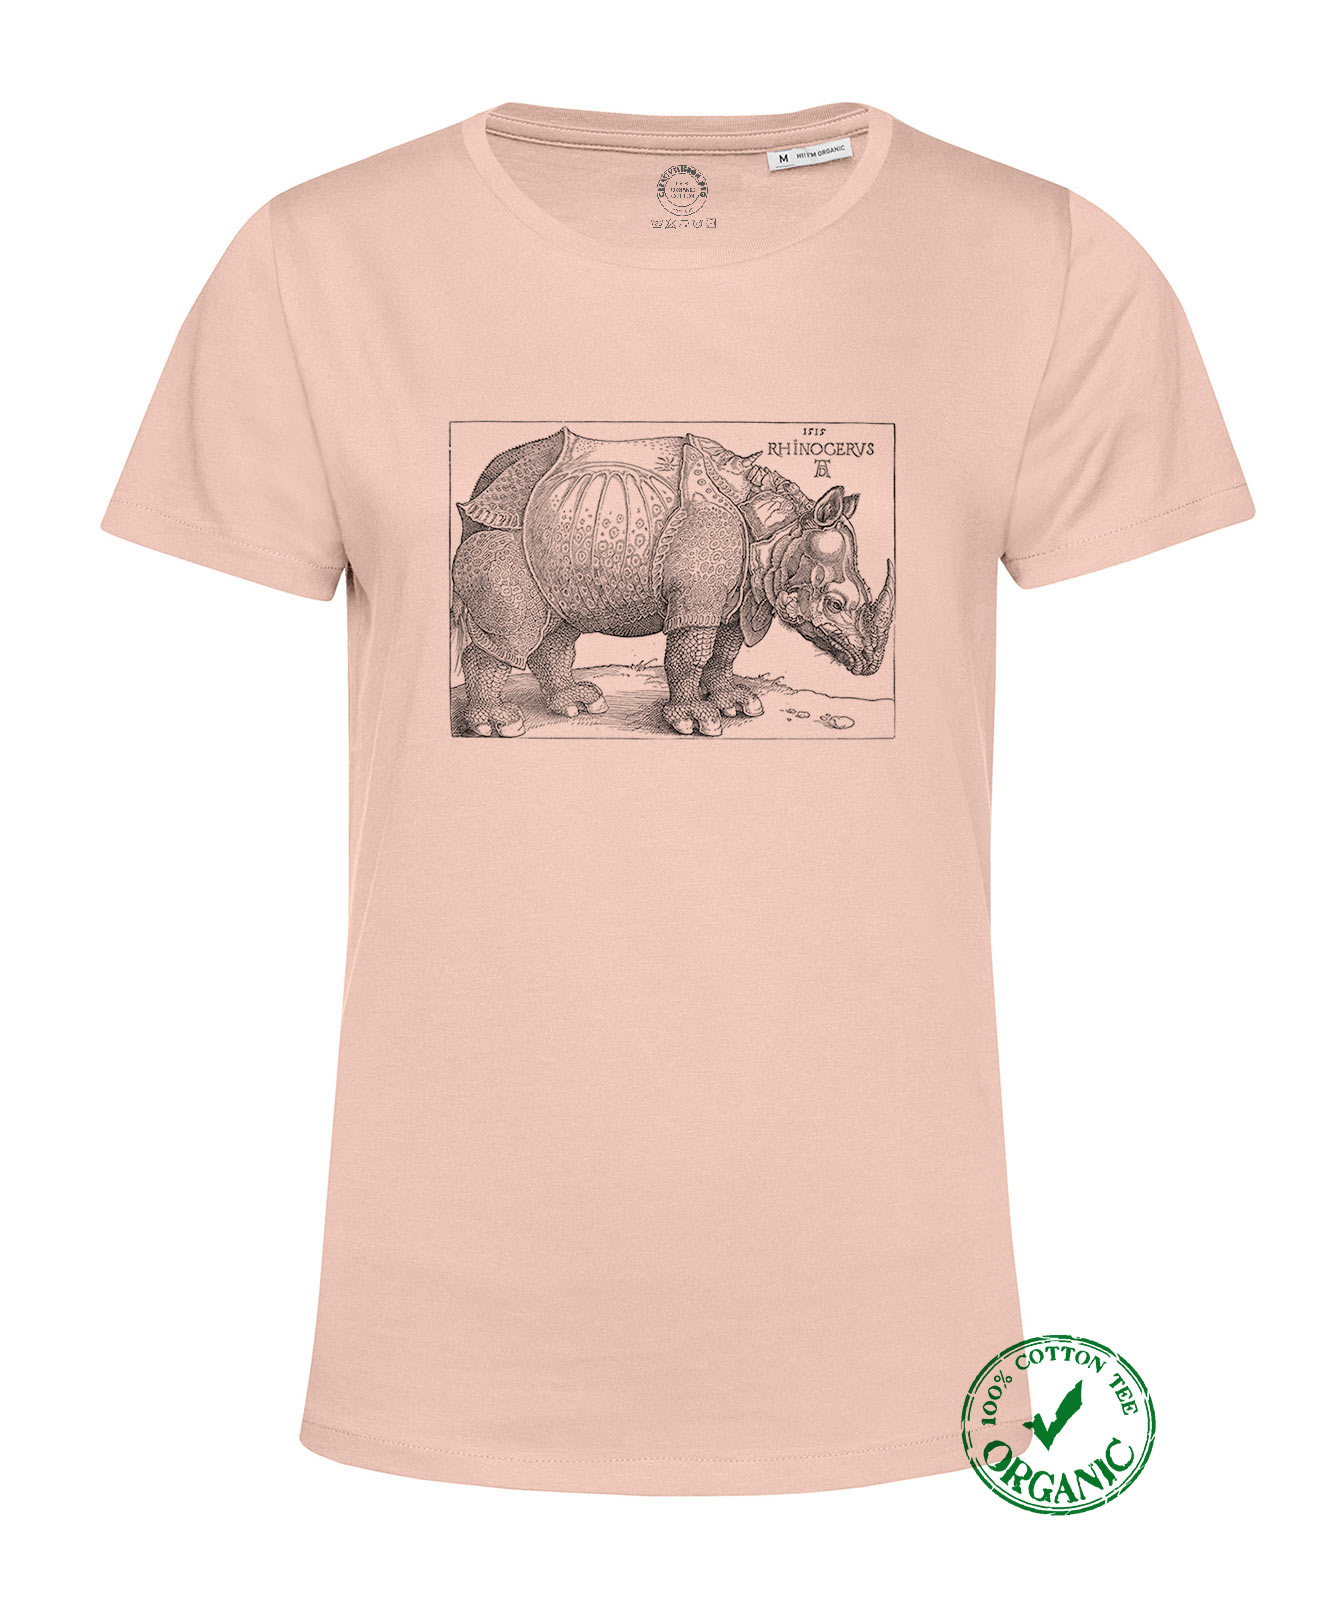 Rhinocerus Organic Woman T-shirt